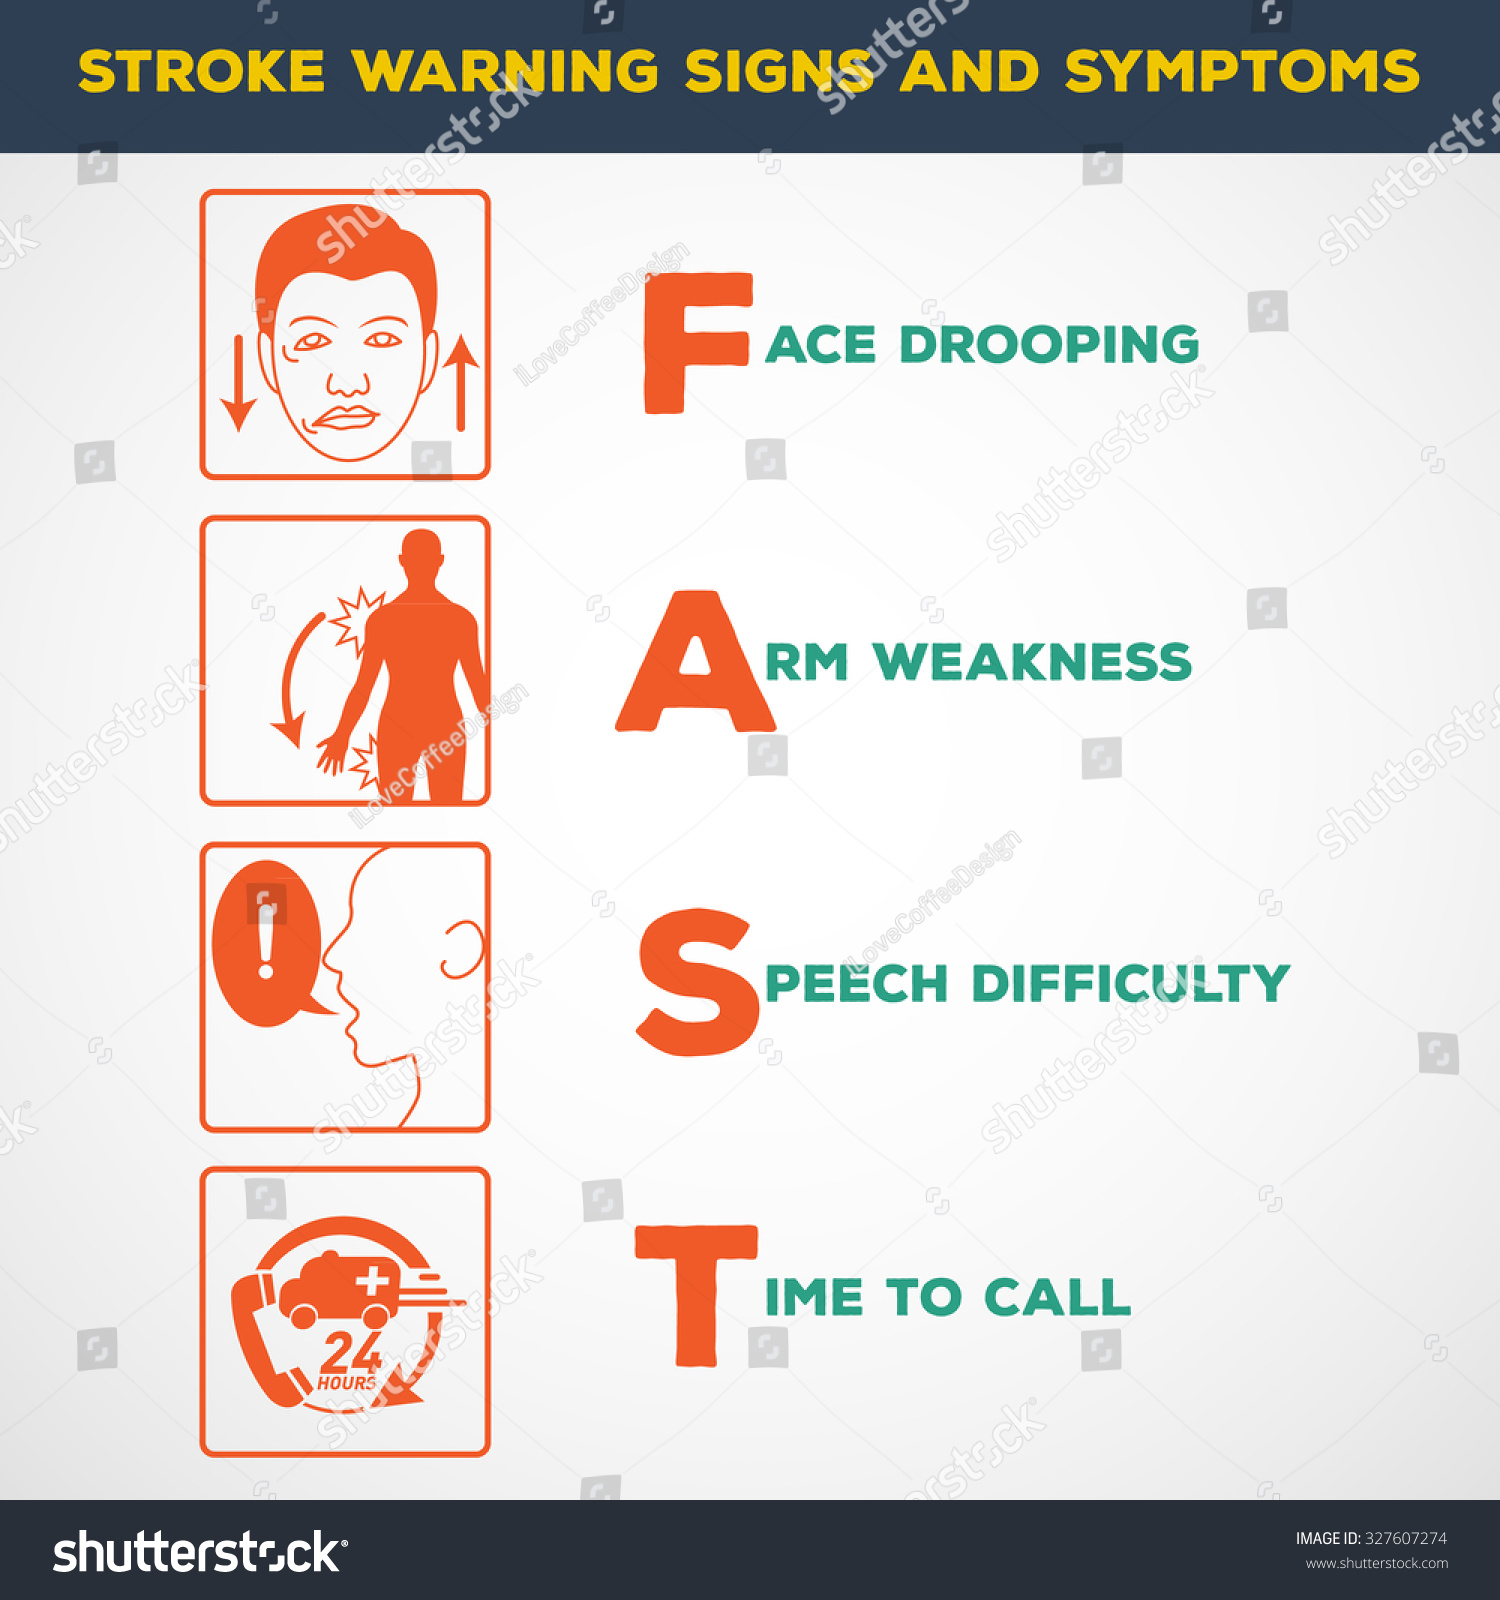 Stroke Symptoms And Signs  Wwwpixsharkm  Images. Is Criminal Justice A Good Major. Seo Landing Page Optimization. Lasik Surgery San Francisco Auto Dealer Bond. Neonatal Nurse Education Pj Plumbing Dover Nj. Electrical Engineering Courses Online. San Diego Small Business Attorney. Air Conditioning Service Cape Coral. Honda Dealerships Louisville Ky